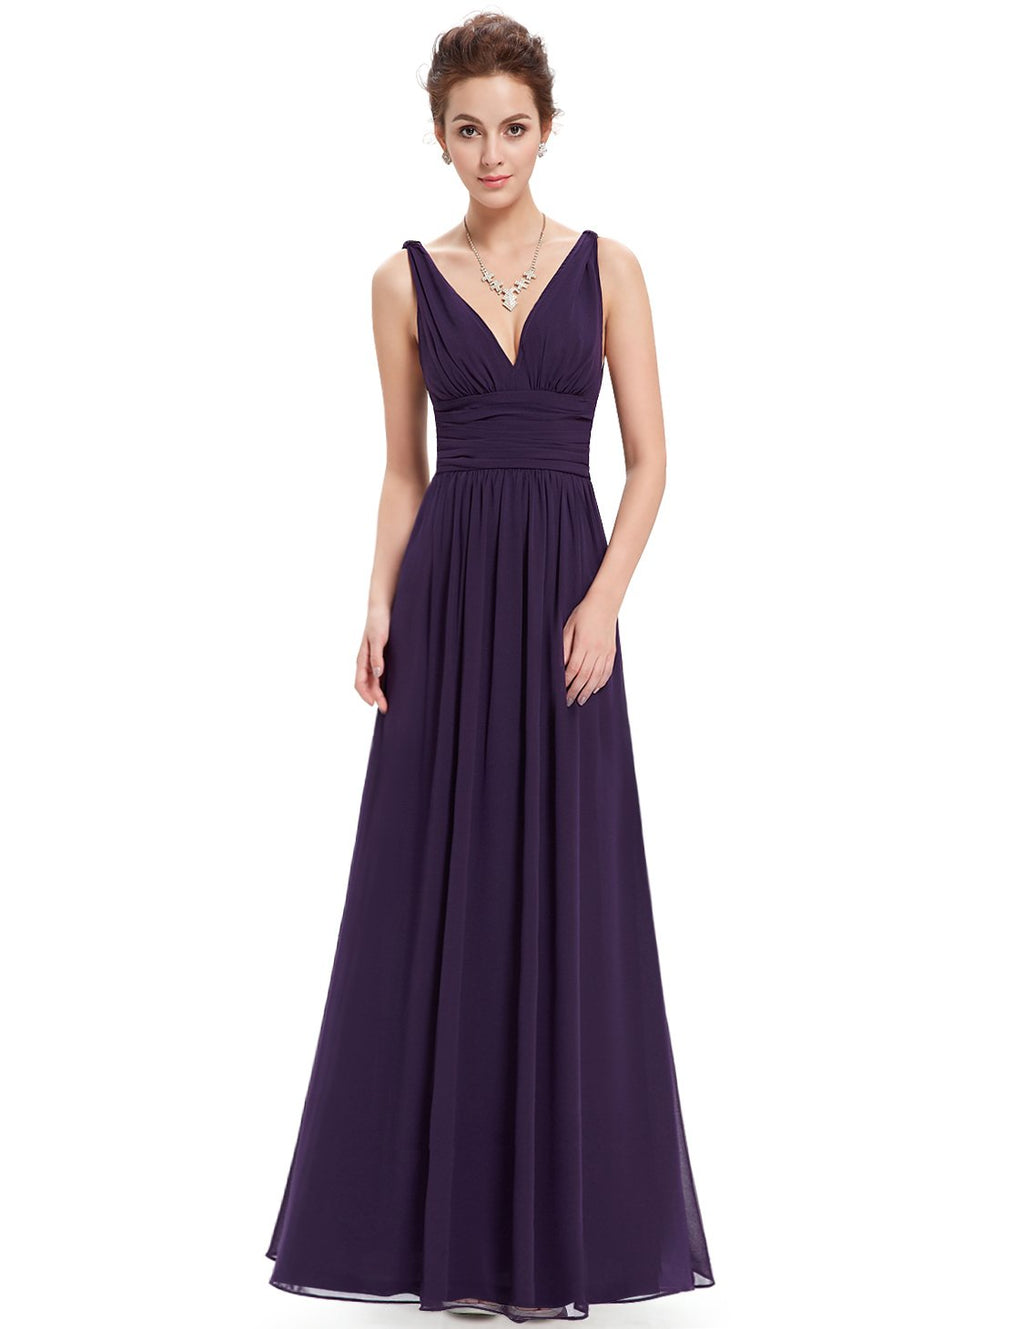 Chiffon Elegant Evening Gown Dark Purple